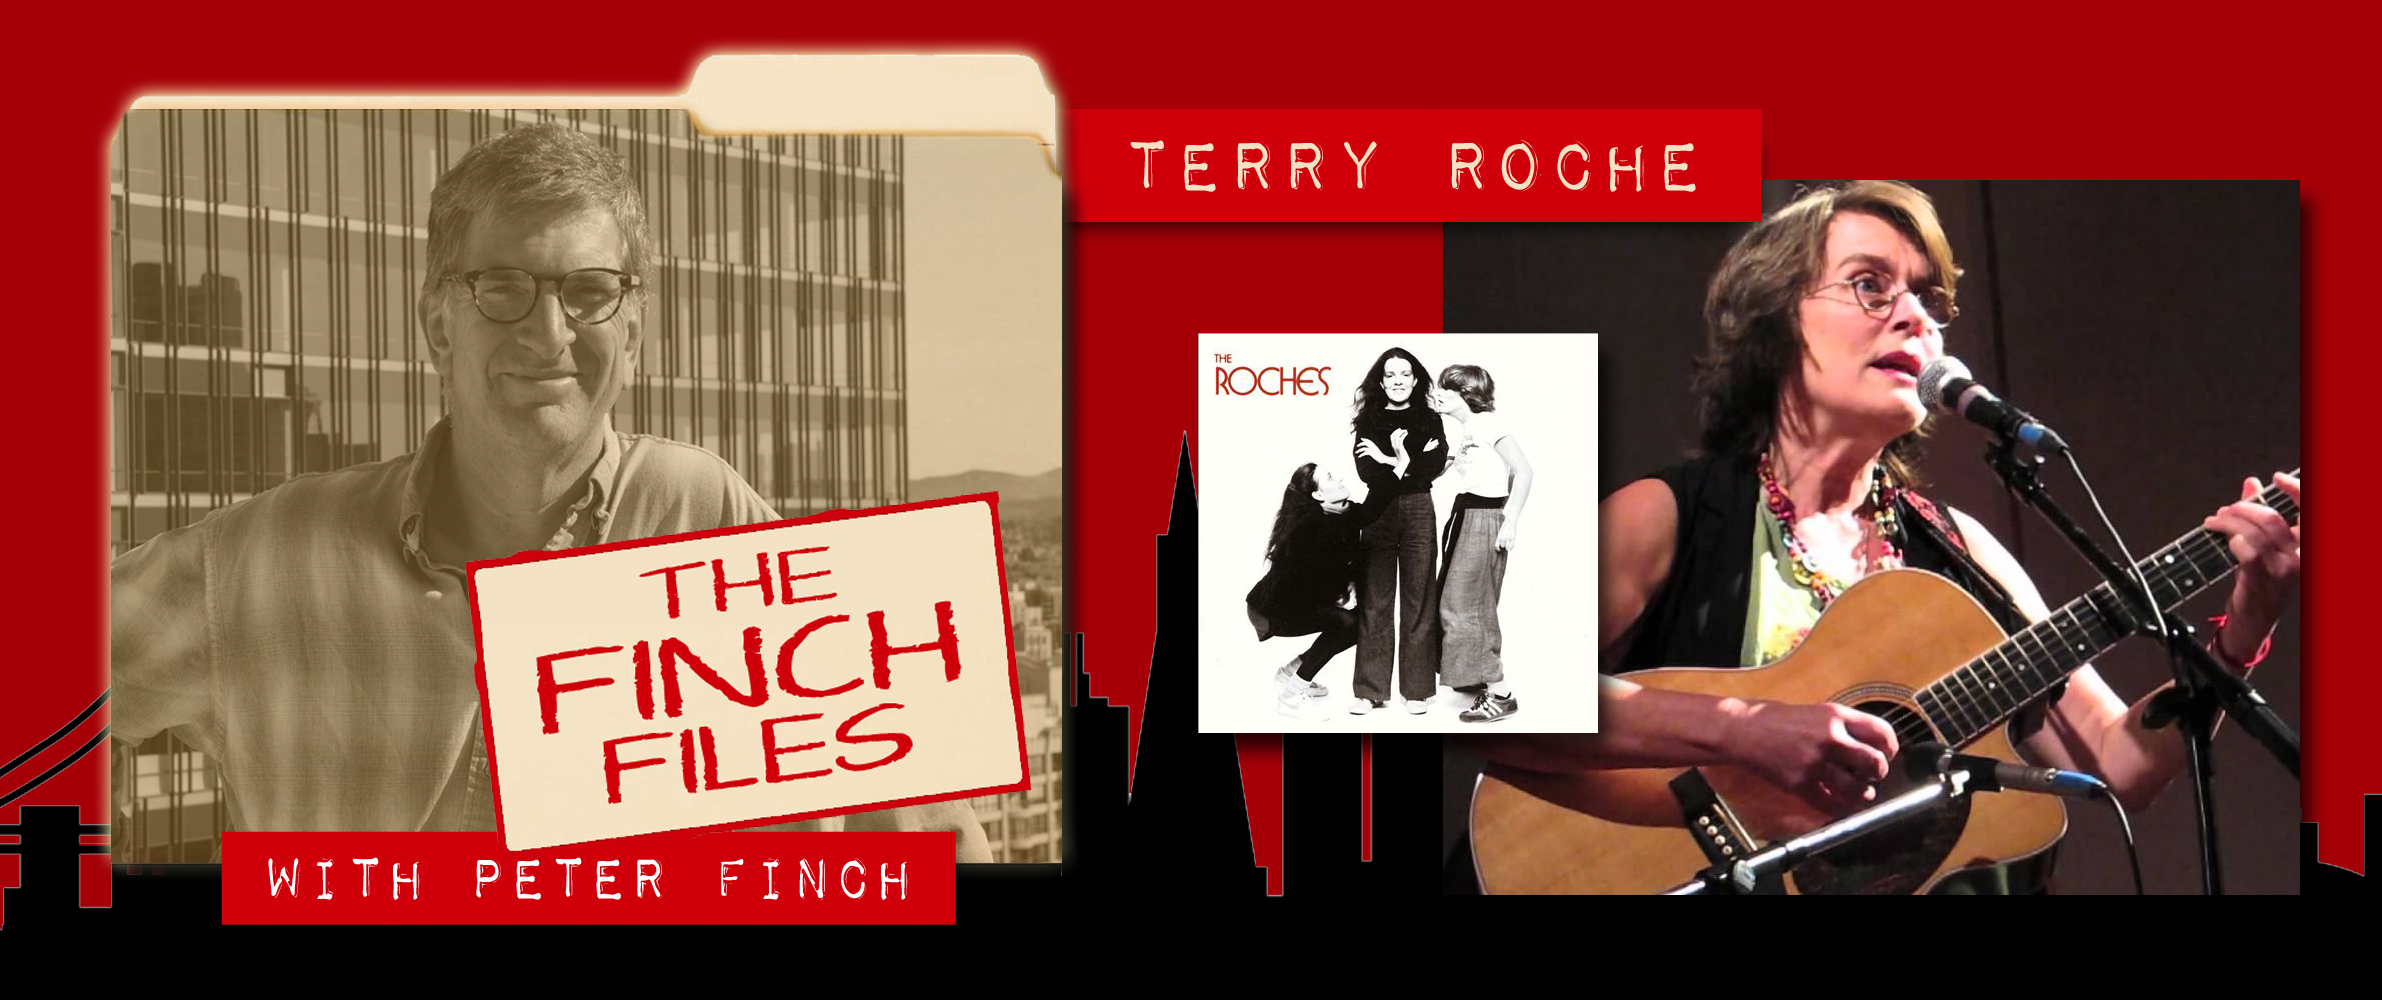 The Finch Files: Terre Roche